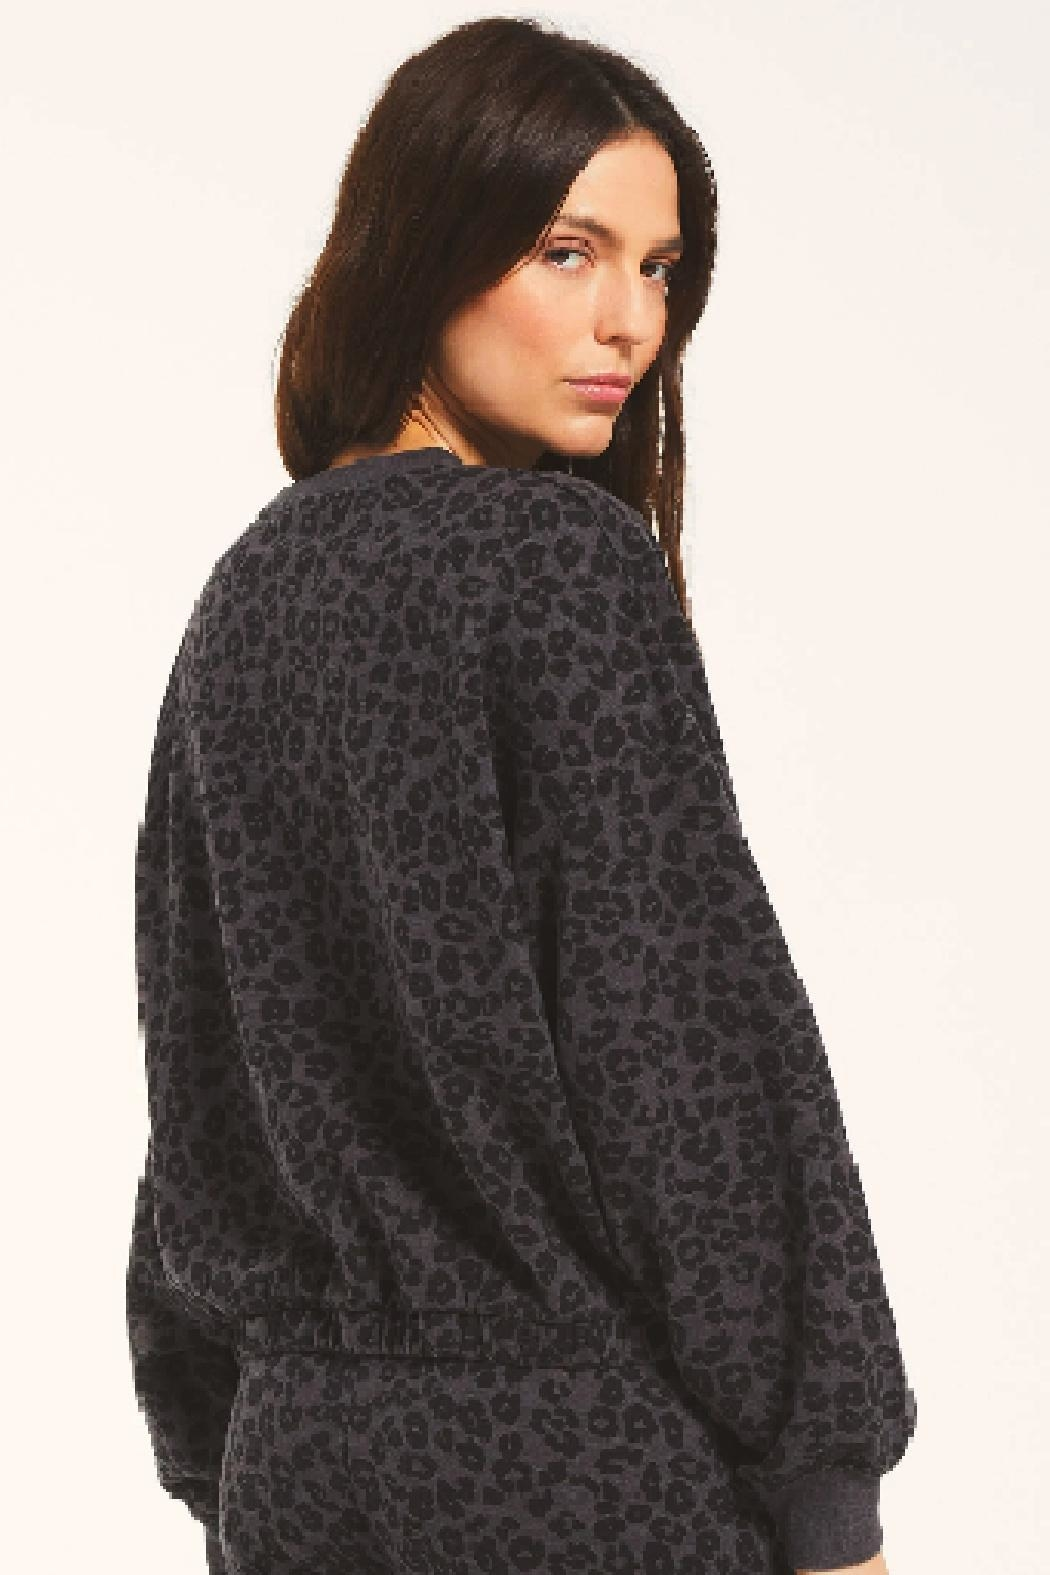 z supply Mason Leopard Pullover - Side Cropped Image